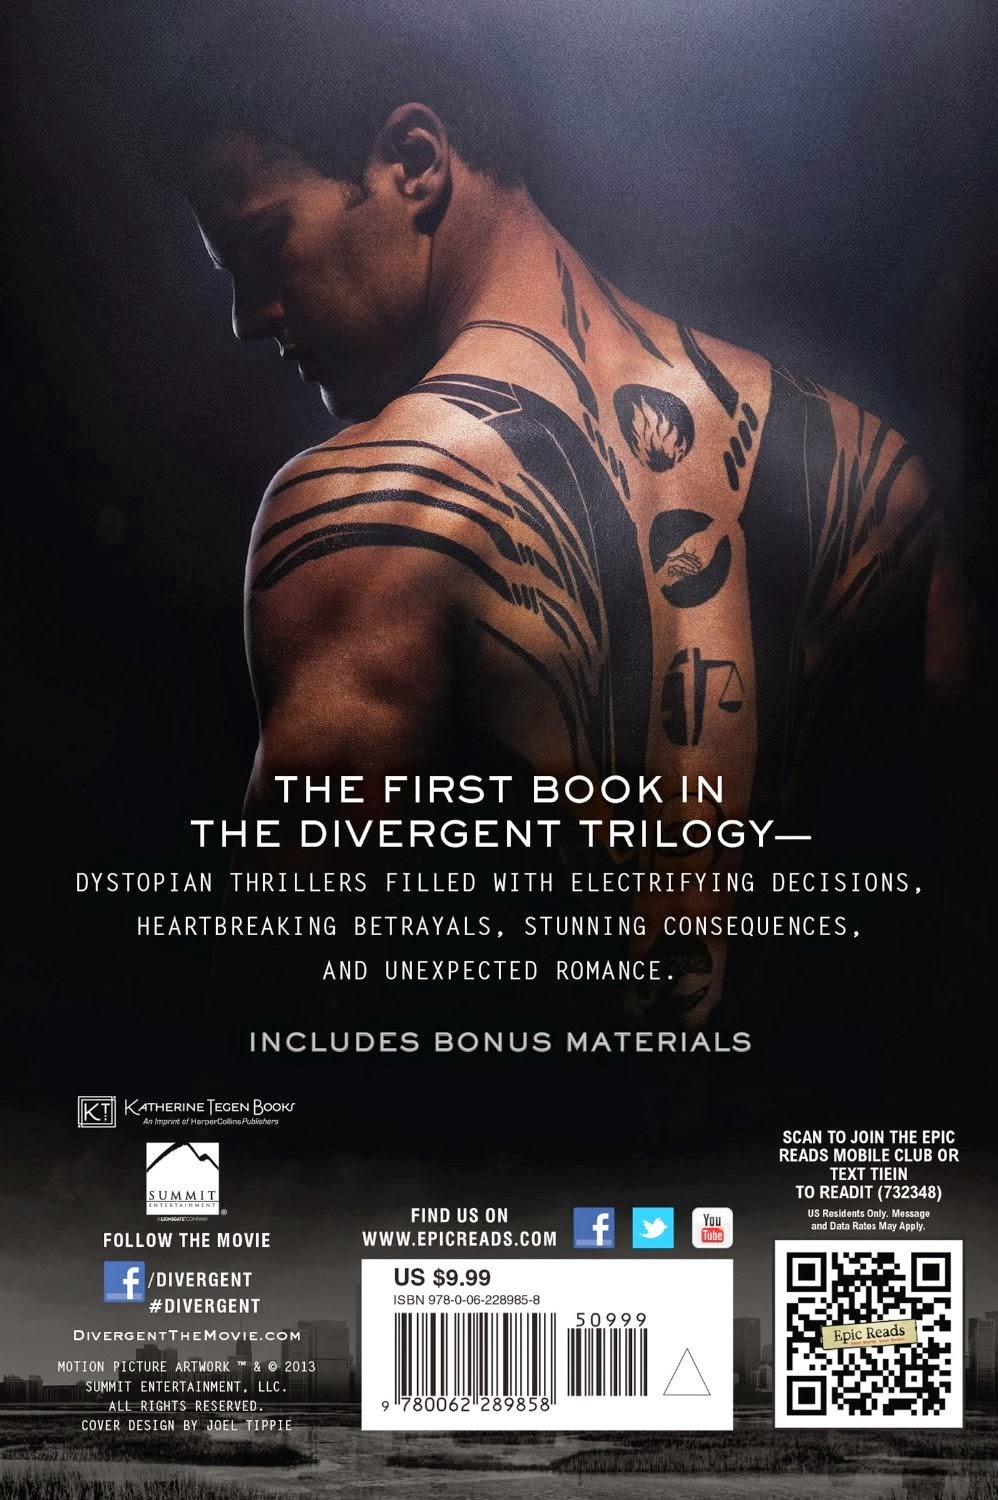 The back cover has a little Divergent Book Cover Back